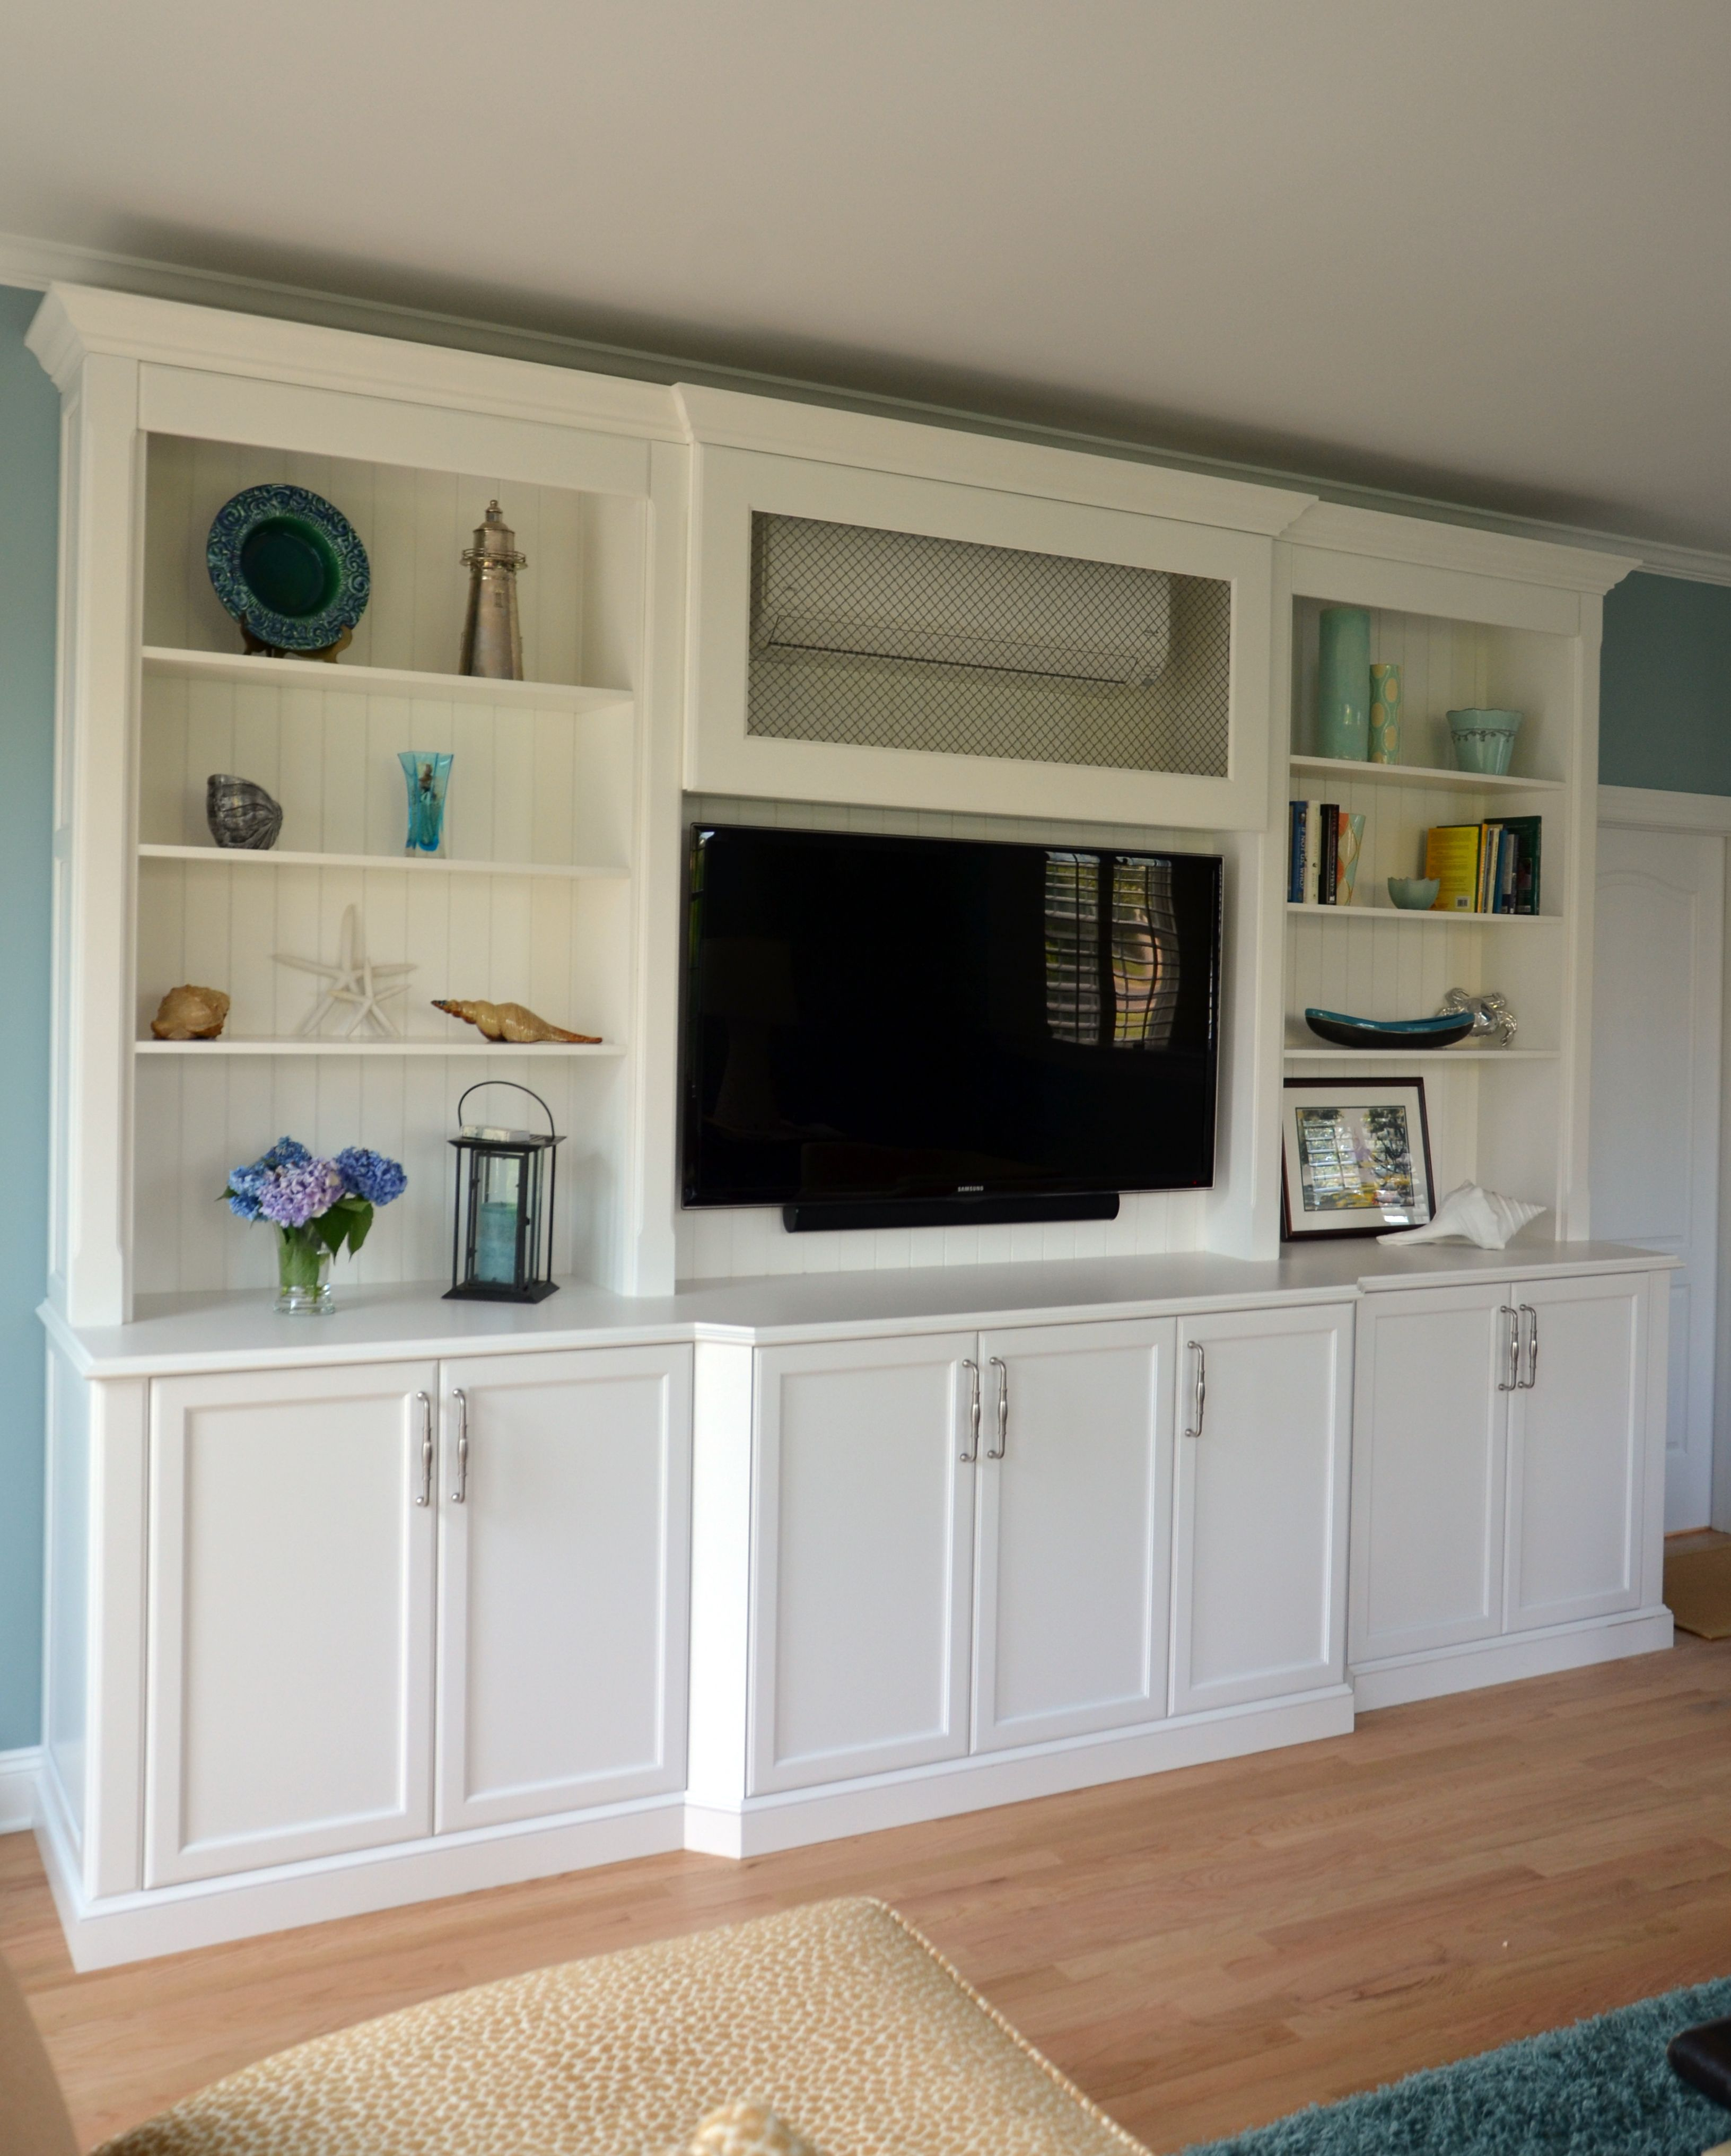 Custom Entertainment Center Wall New Jersey by Design Line ...